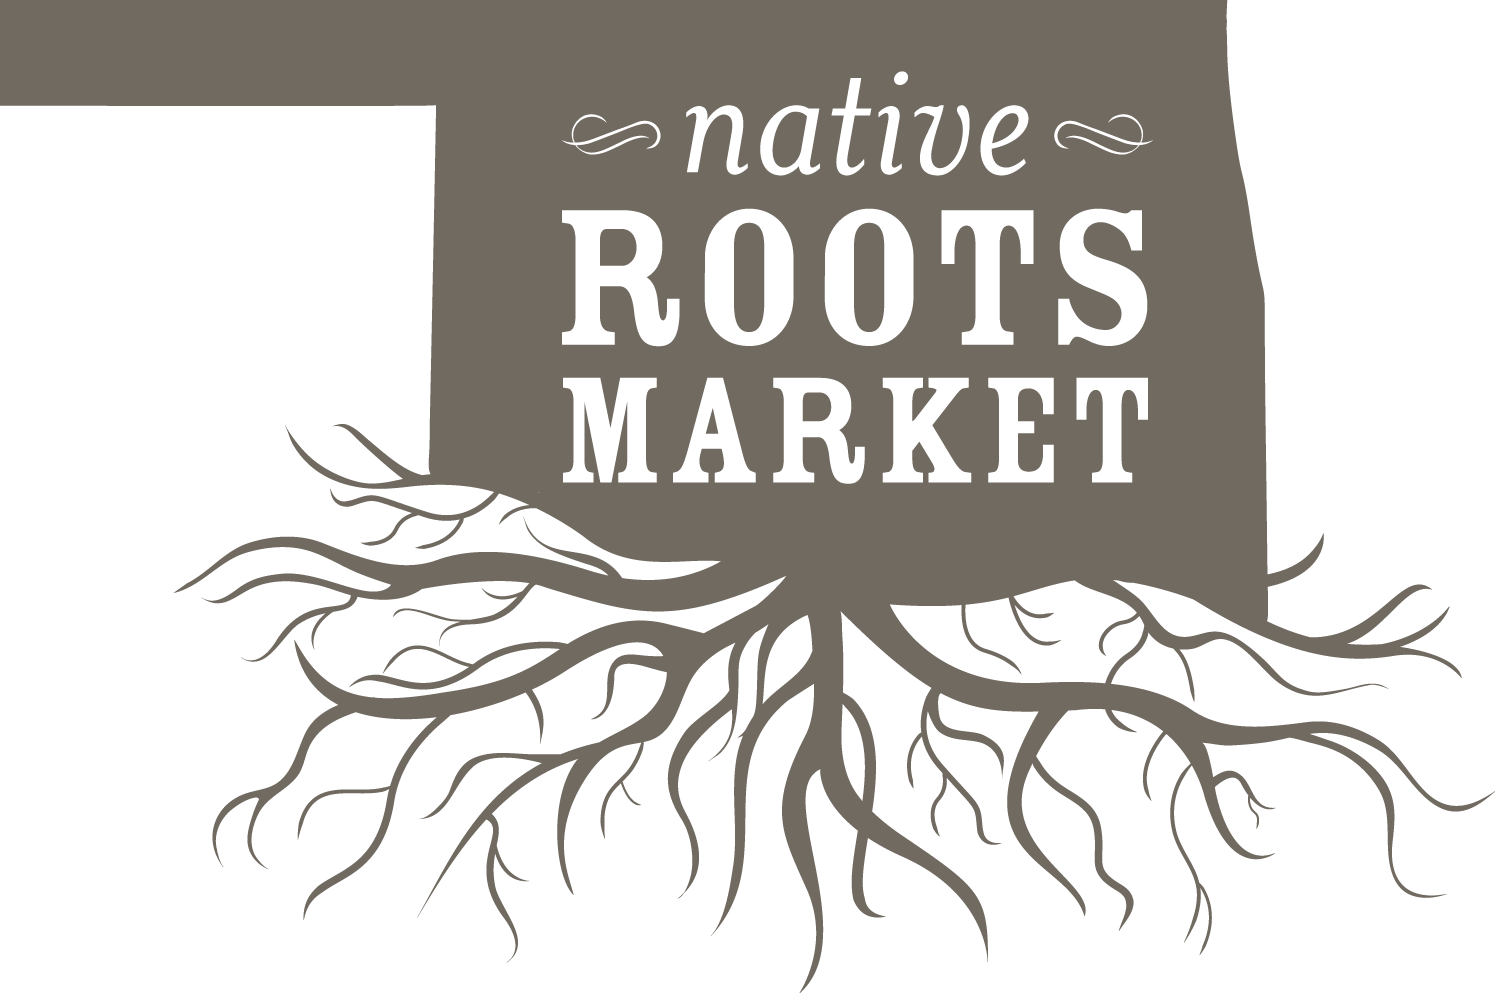 Native Roots Market